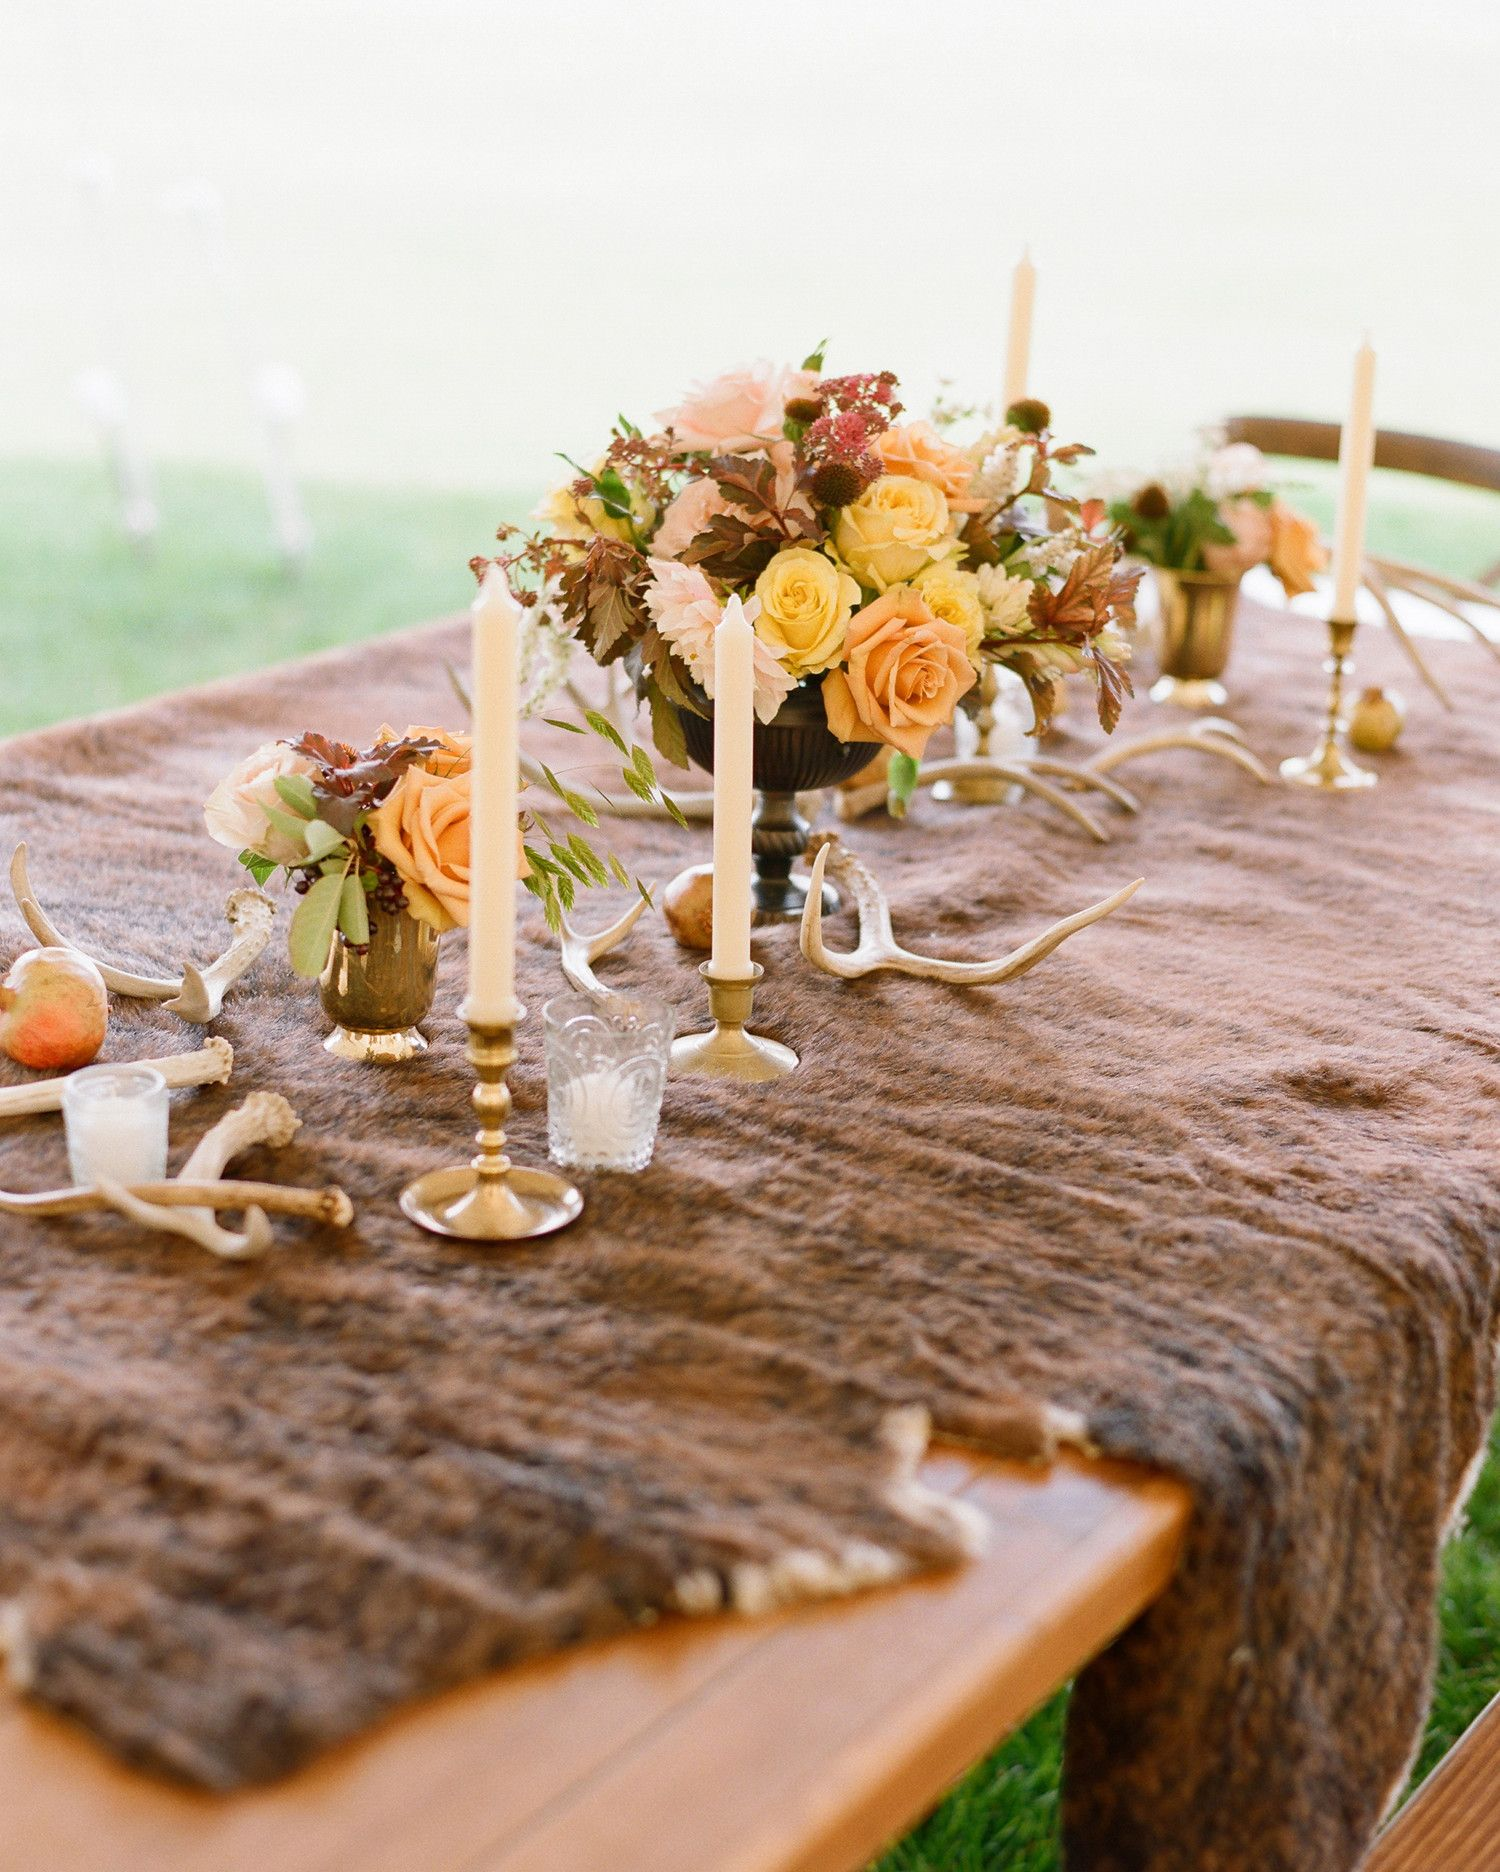 Callie and Eric's Rustic Ranch Wedding Rustic ranch